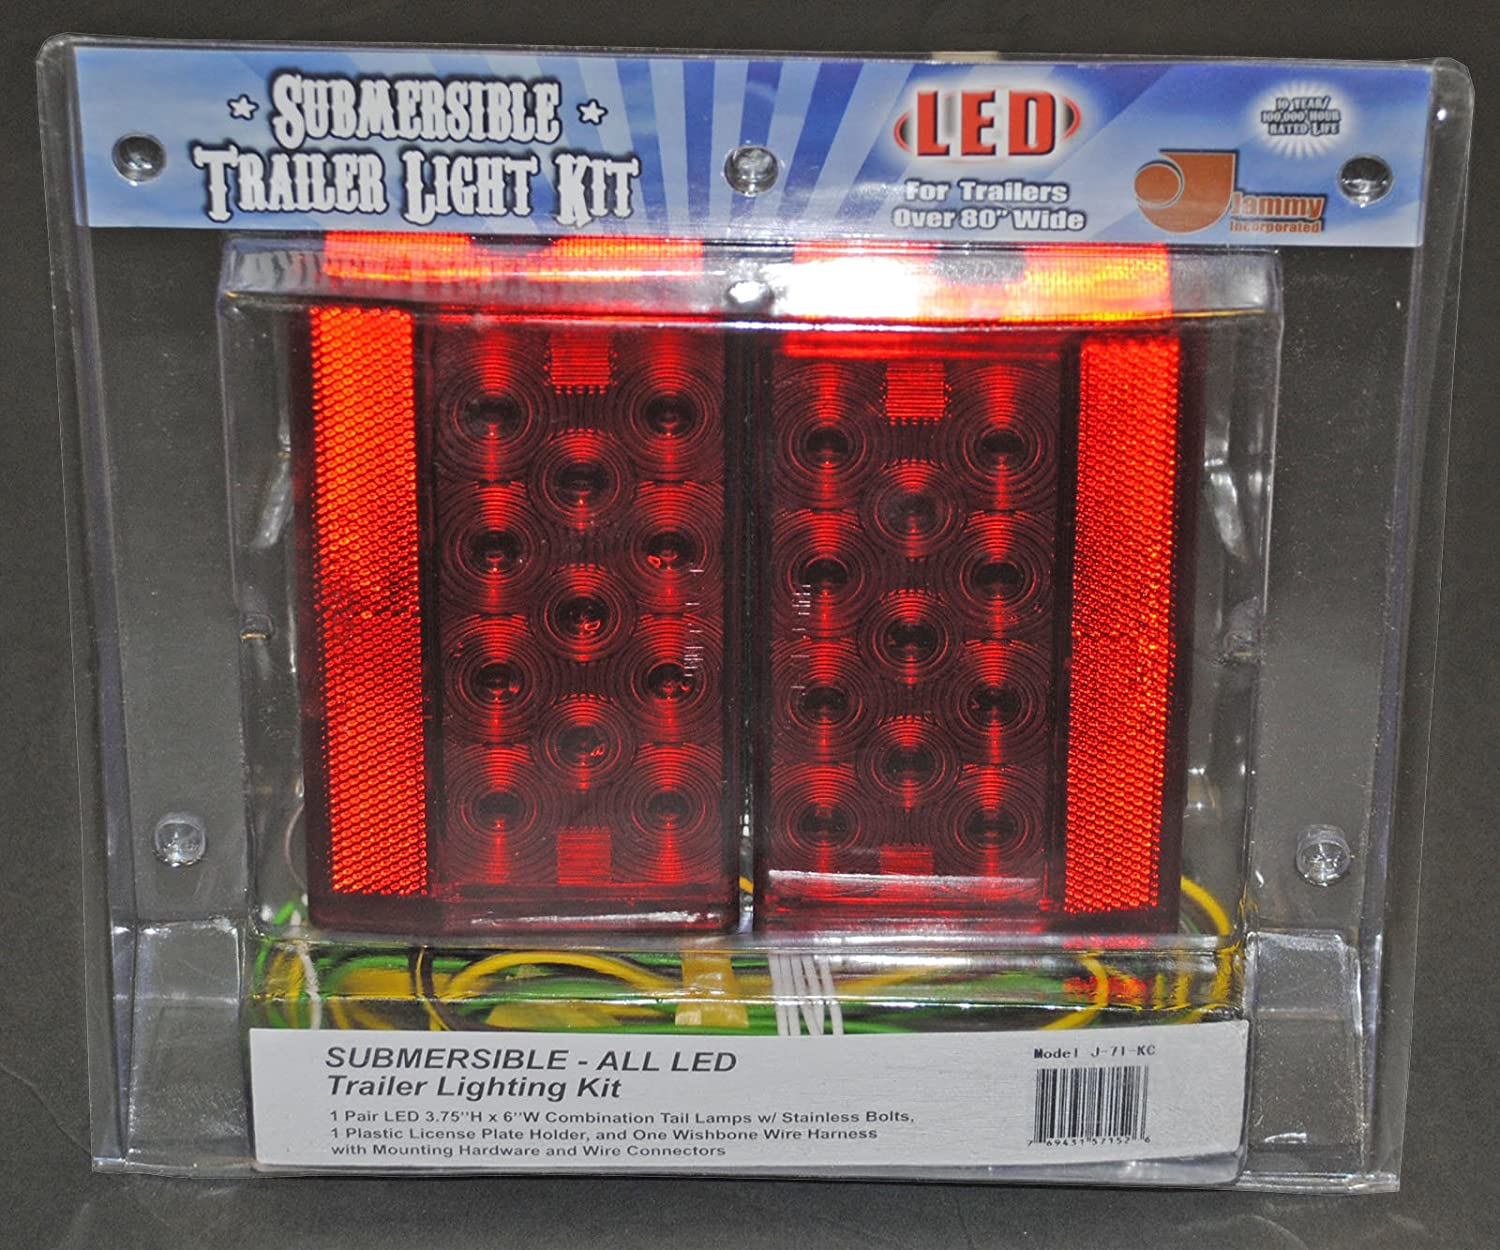 Boat Trailer Led Light Kit For Over 80 Wide Marine Shorelander Wiring Harness Trailers Automotive